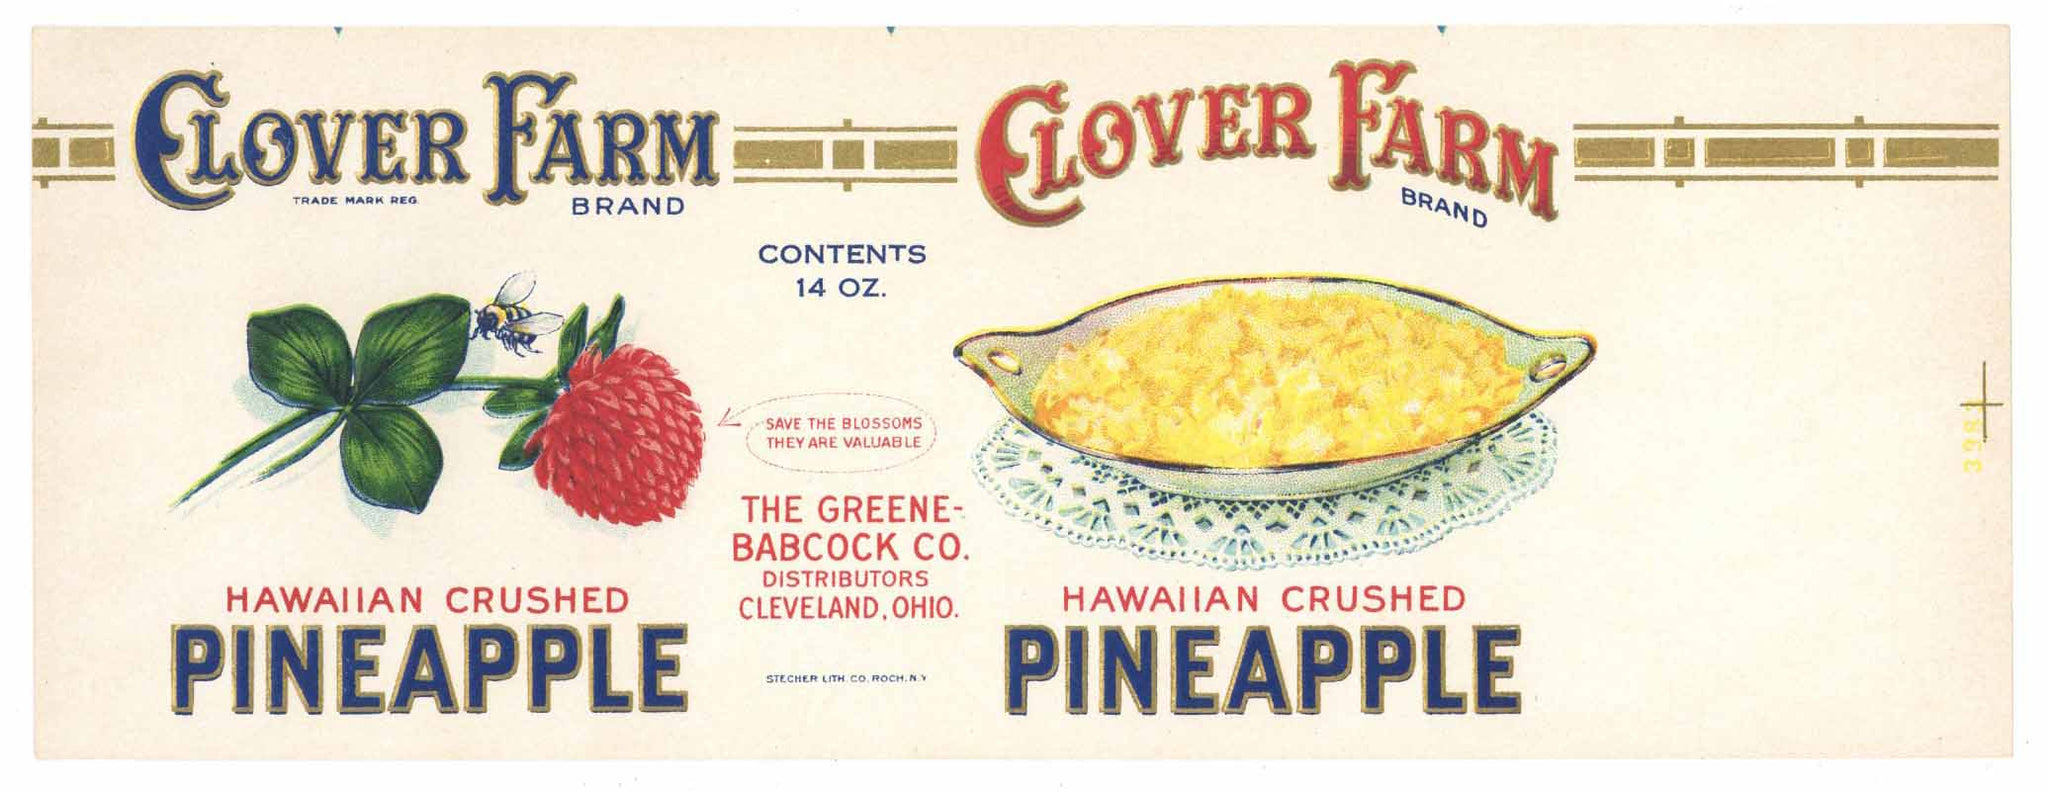 Clover Farm Brand Vintage Ohio Pineapple Can Label